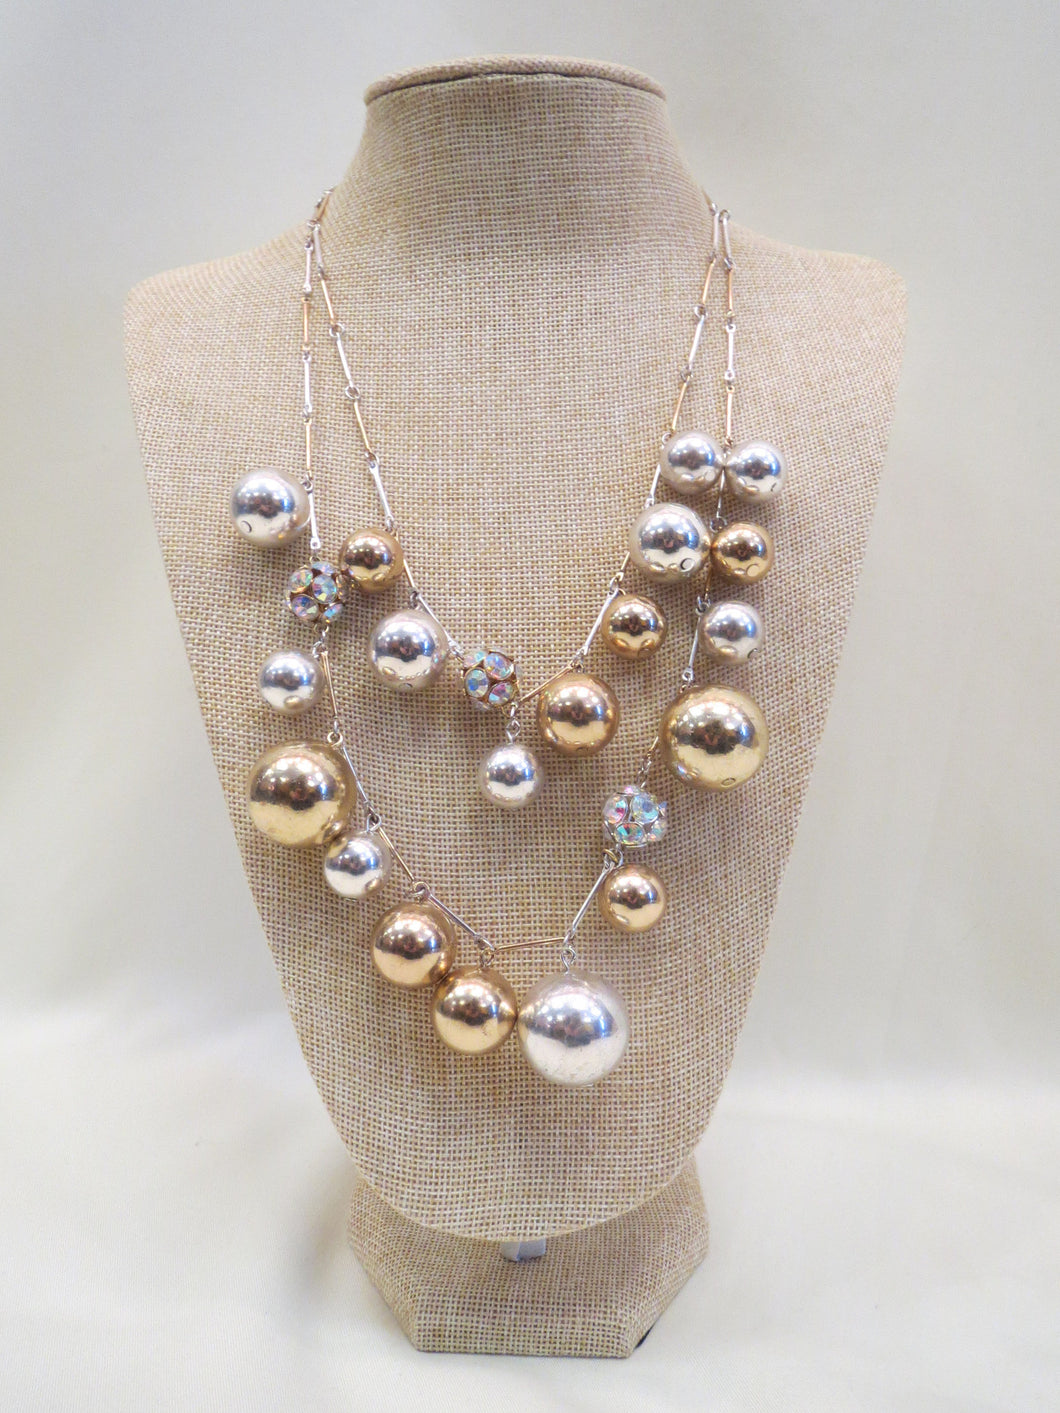 ADO Silver & Gold Ball Necklace | All Dec'd Out